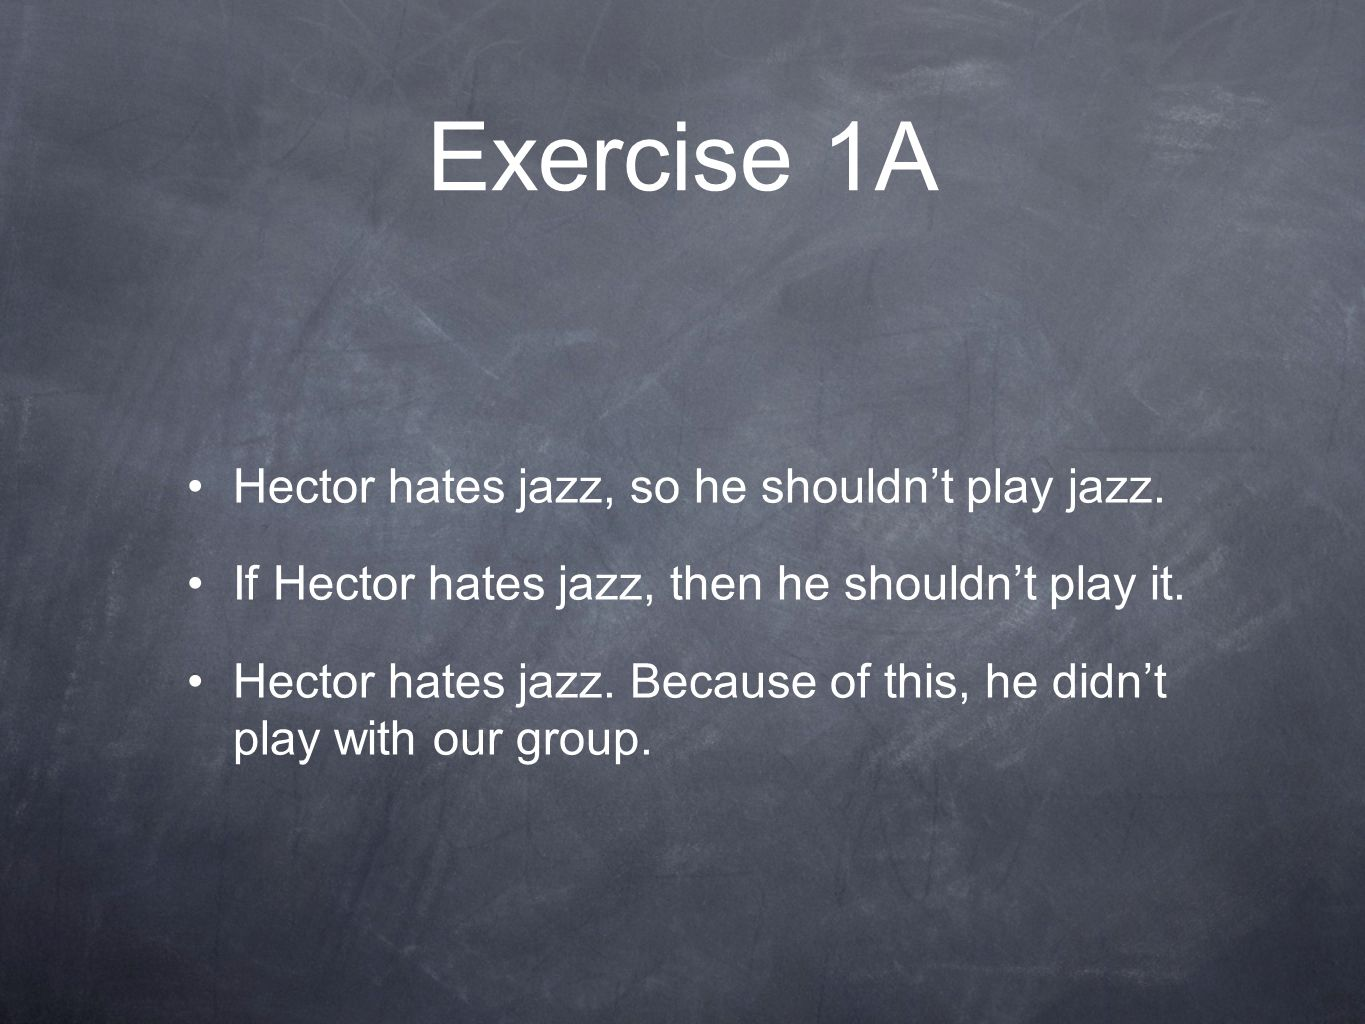 Exercise 1A Hector hates jazz, so he shouldn't play jazz. If Hector hates jazz, then he shouldn't play it. Hector hates jazz. Because of this, he didn